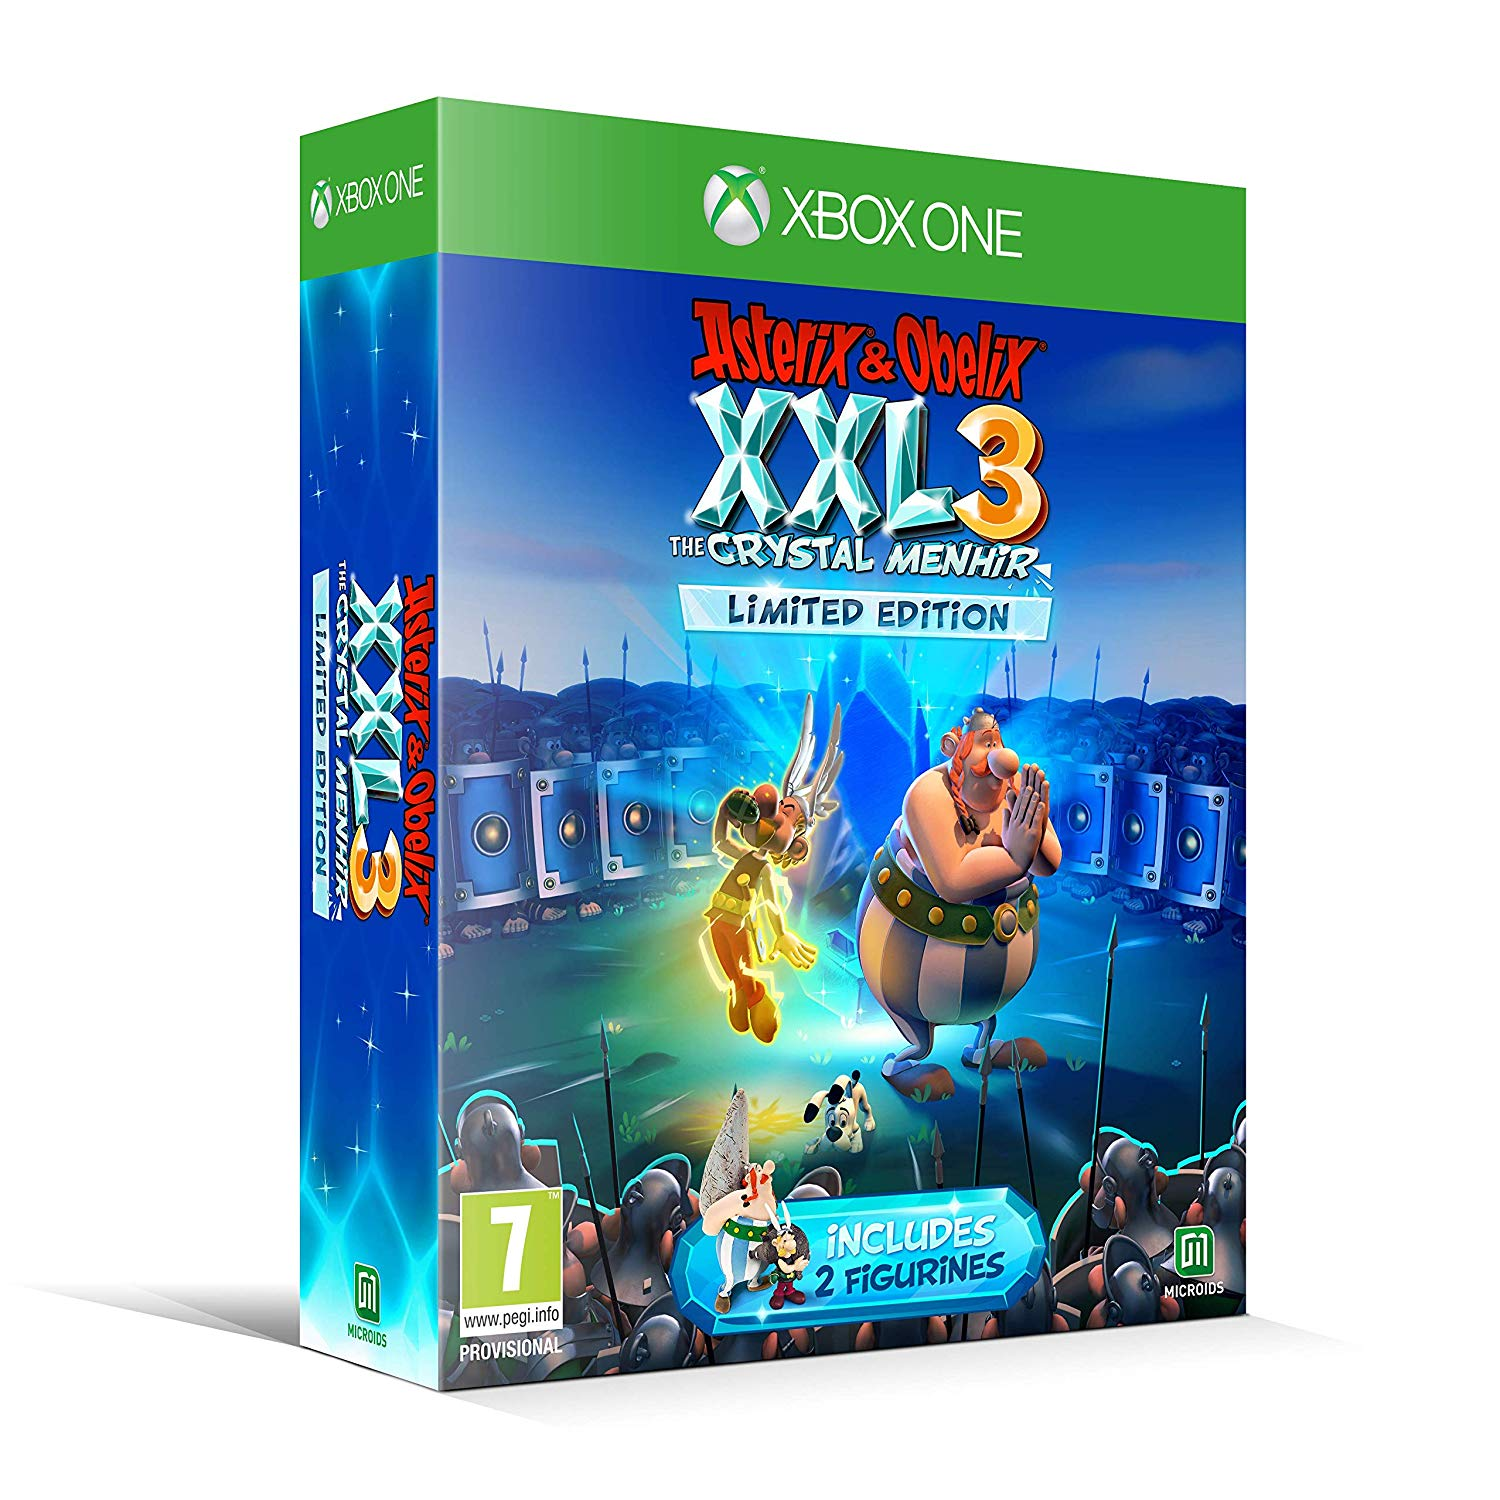 Asterix & Obelix XXL 3: The Crystal Menhir - Xbox One, XBOX ONE, DVDMEGASTORE, DVDMEGASTORE